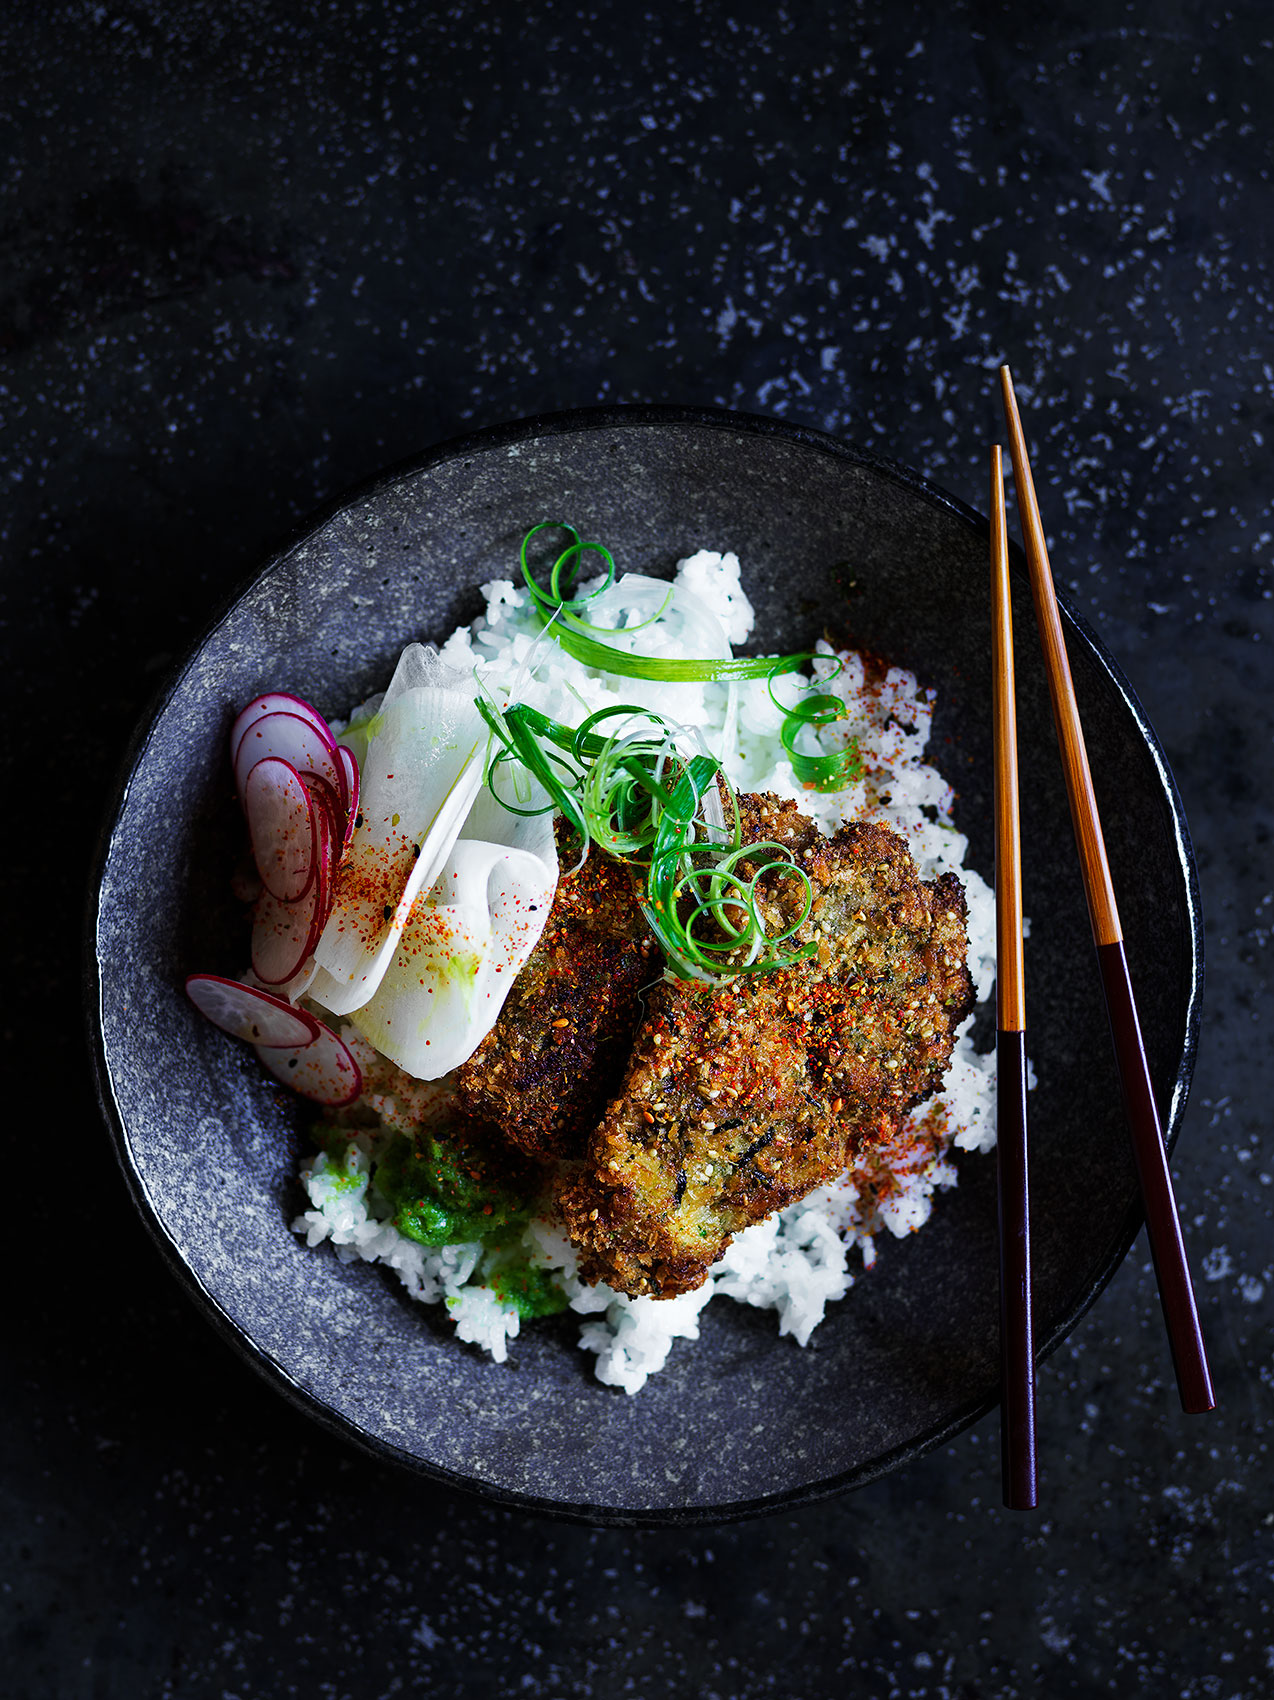 20190329July-Sesame-and-Nori-Crumbed-Lamb01